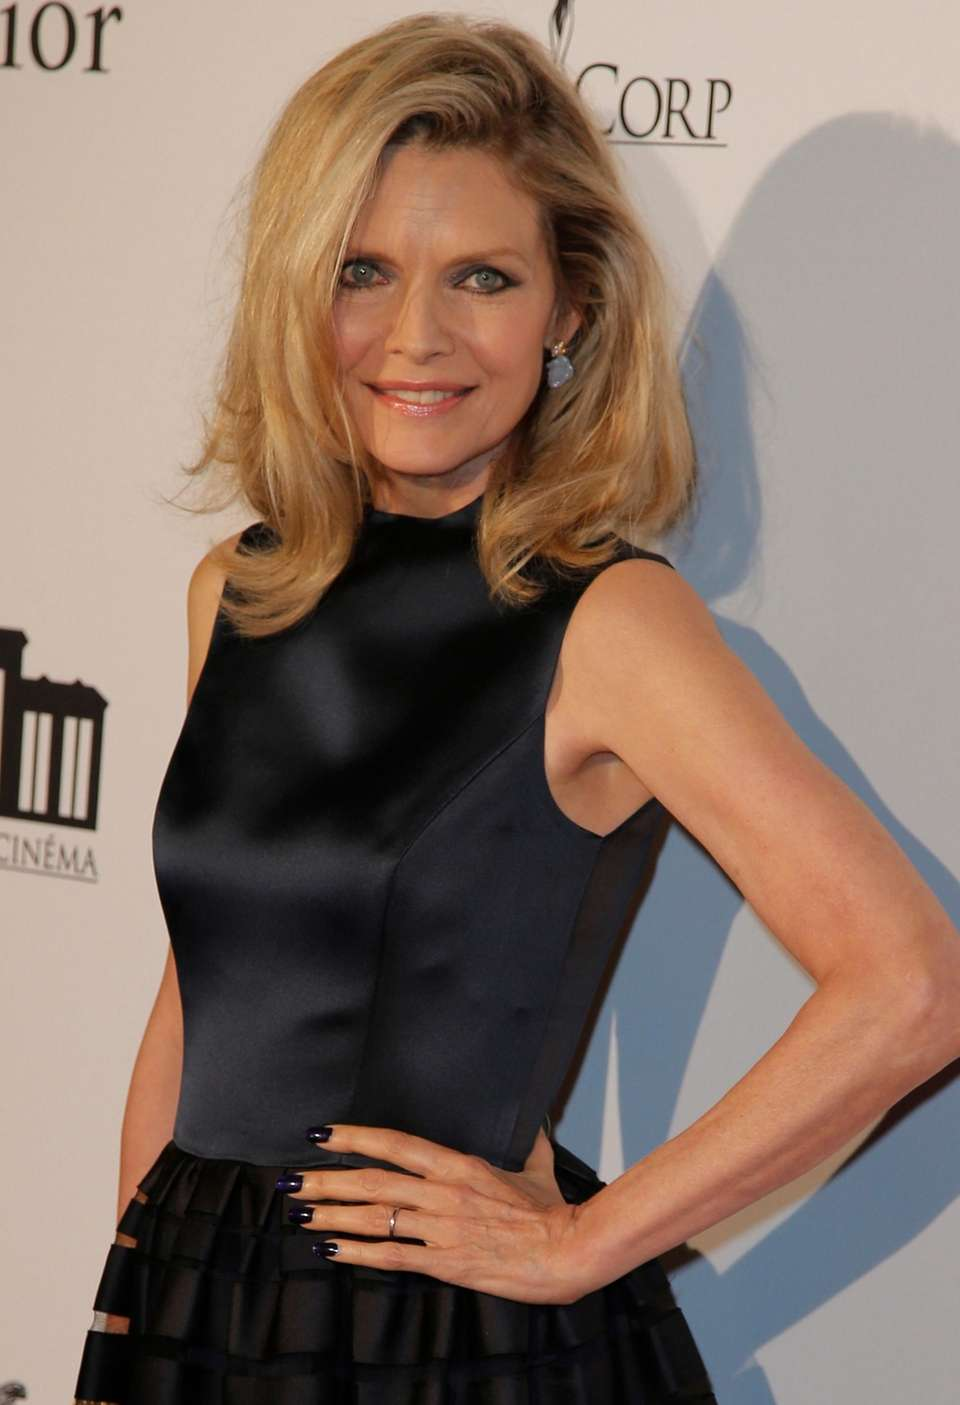 Michelle Pfeiffer, known for her roles in